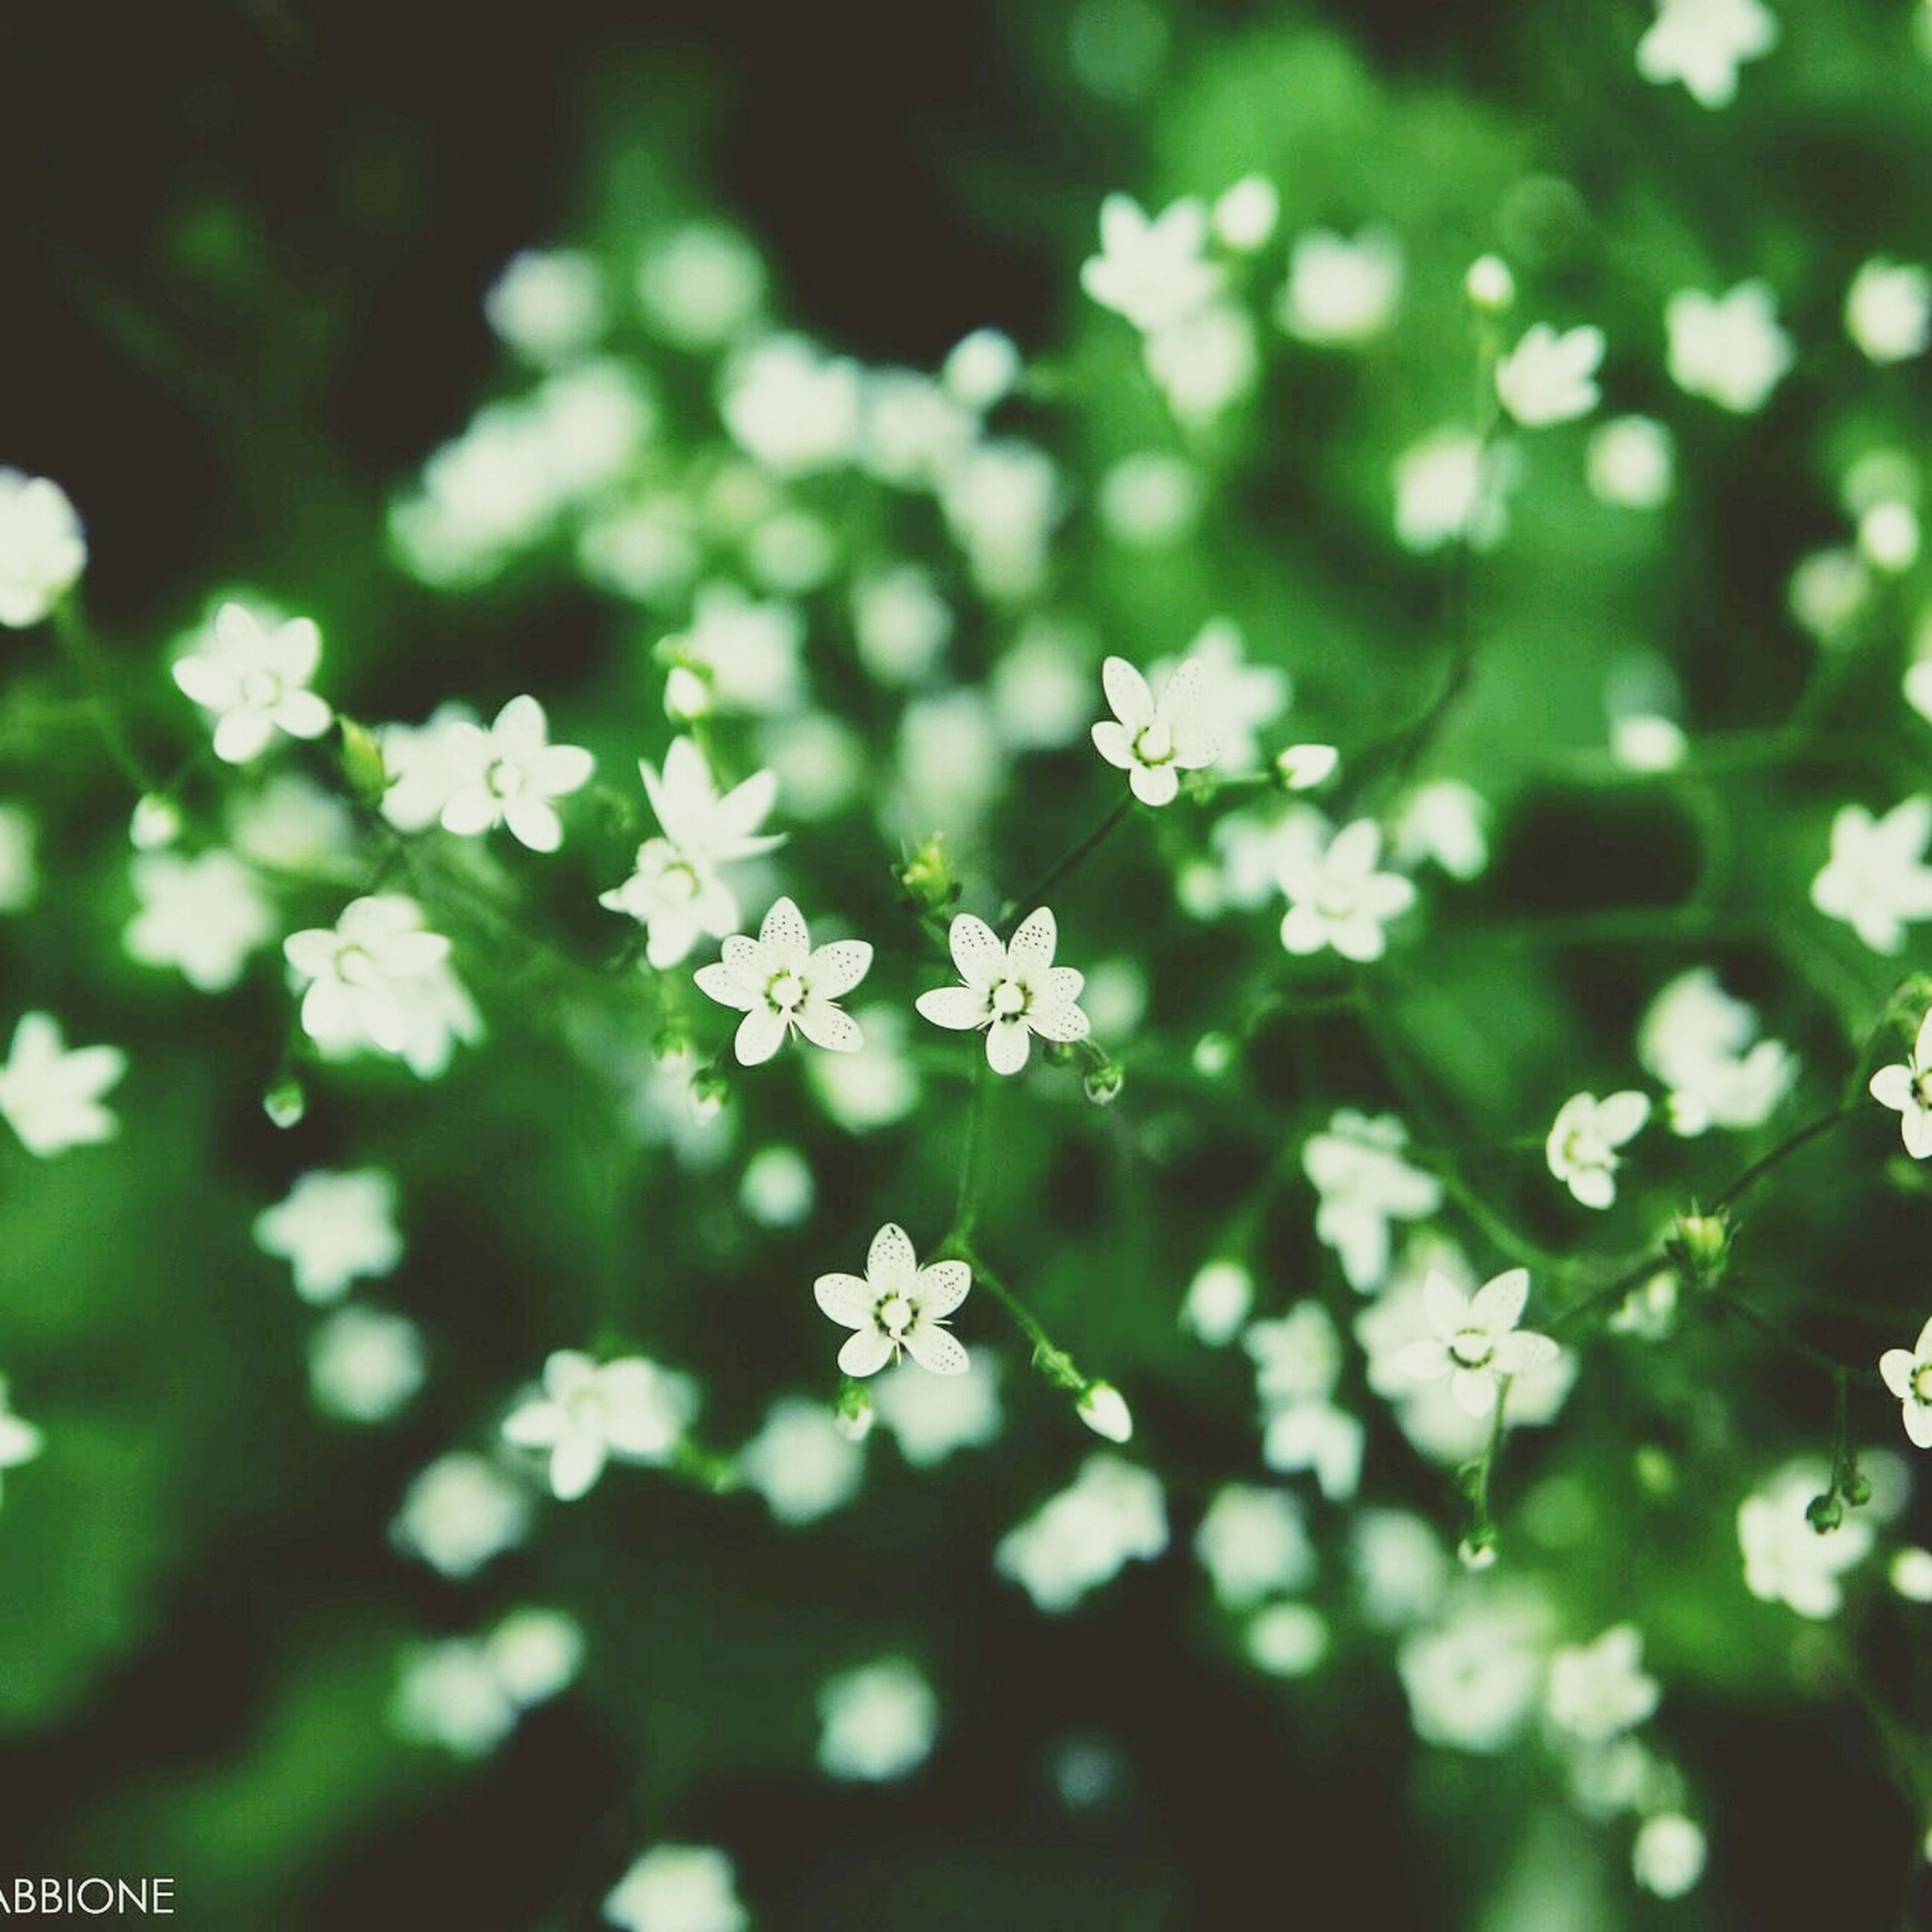 flower, white color, growth, freshness, nature, fragility, beauty in nature, selective focus, focus on foreground, close-up, petal, plant, white, blooming, outdoors, day, no people, in bloom, tree, park - man made space